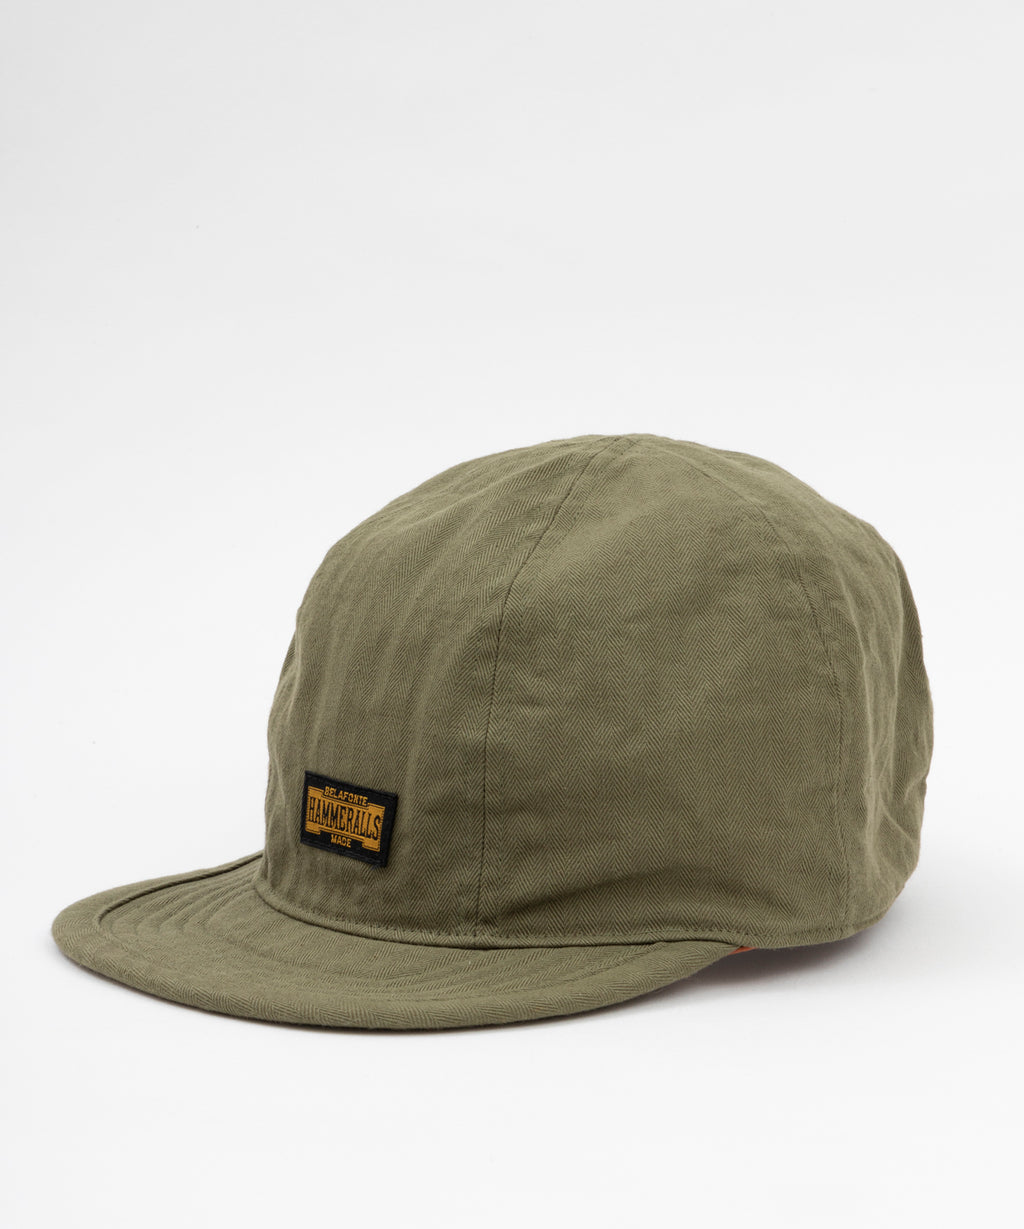 Ragtime Chopper Cap - Army Green Serge